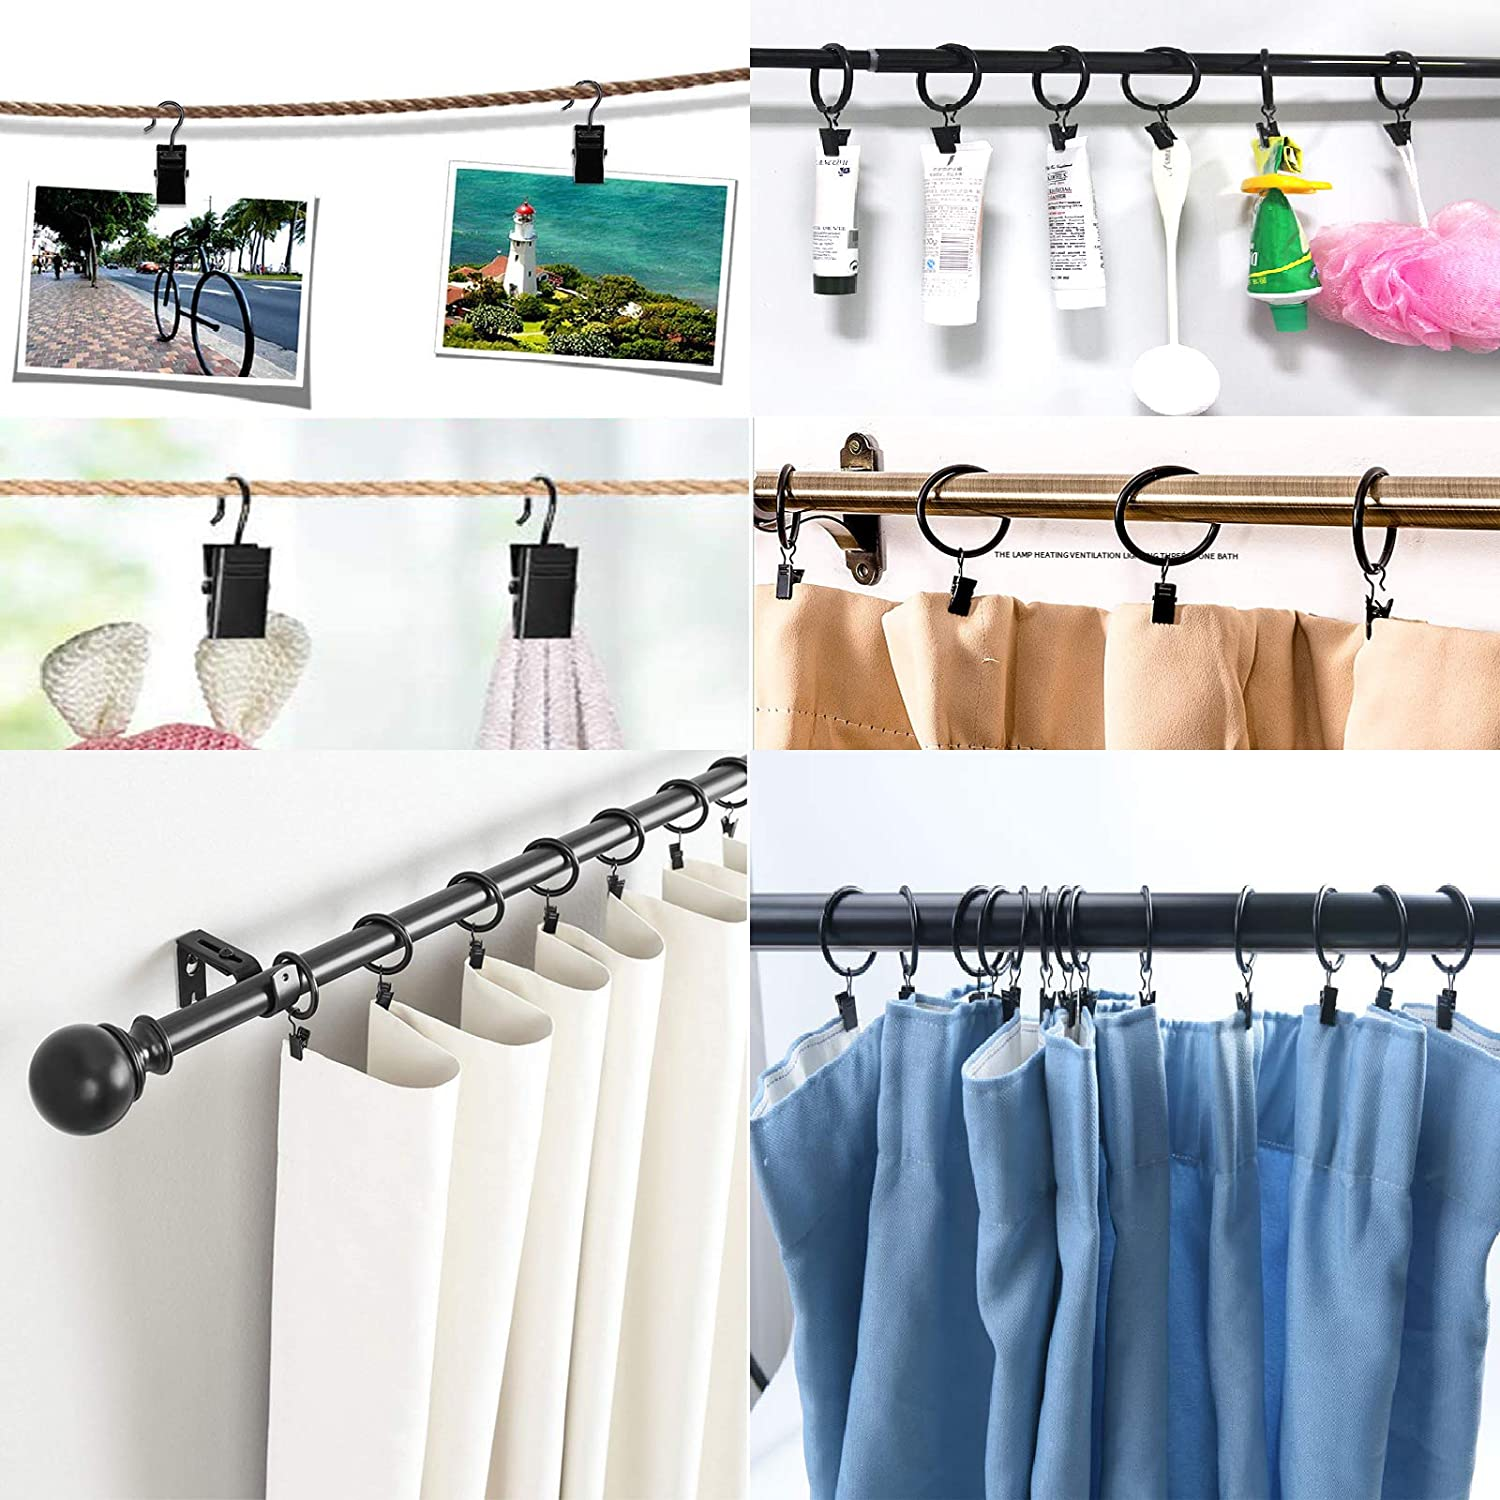 Small Curtain Clips with Hooks Photo Clips Bulldog Clips Laundry Hooks for Curtain Rings Art Craft Display YUEMING 20 Pcs Metal Curtain Clips Home Decoration Photos Hanging Window Curtain